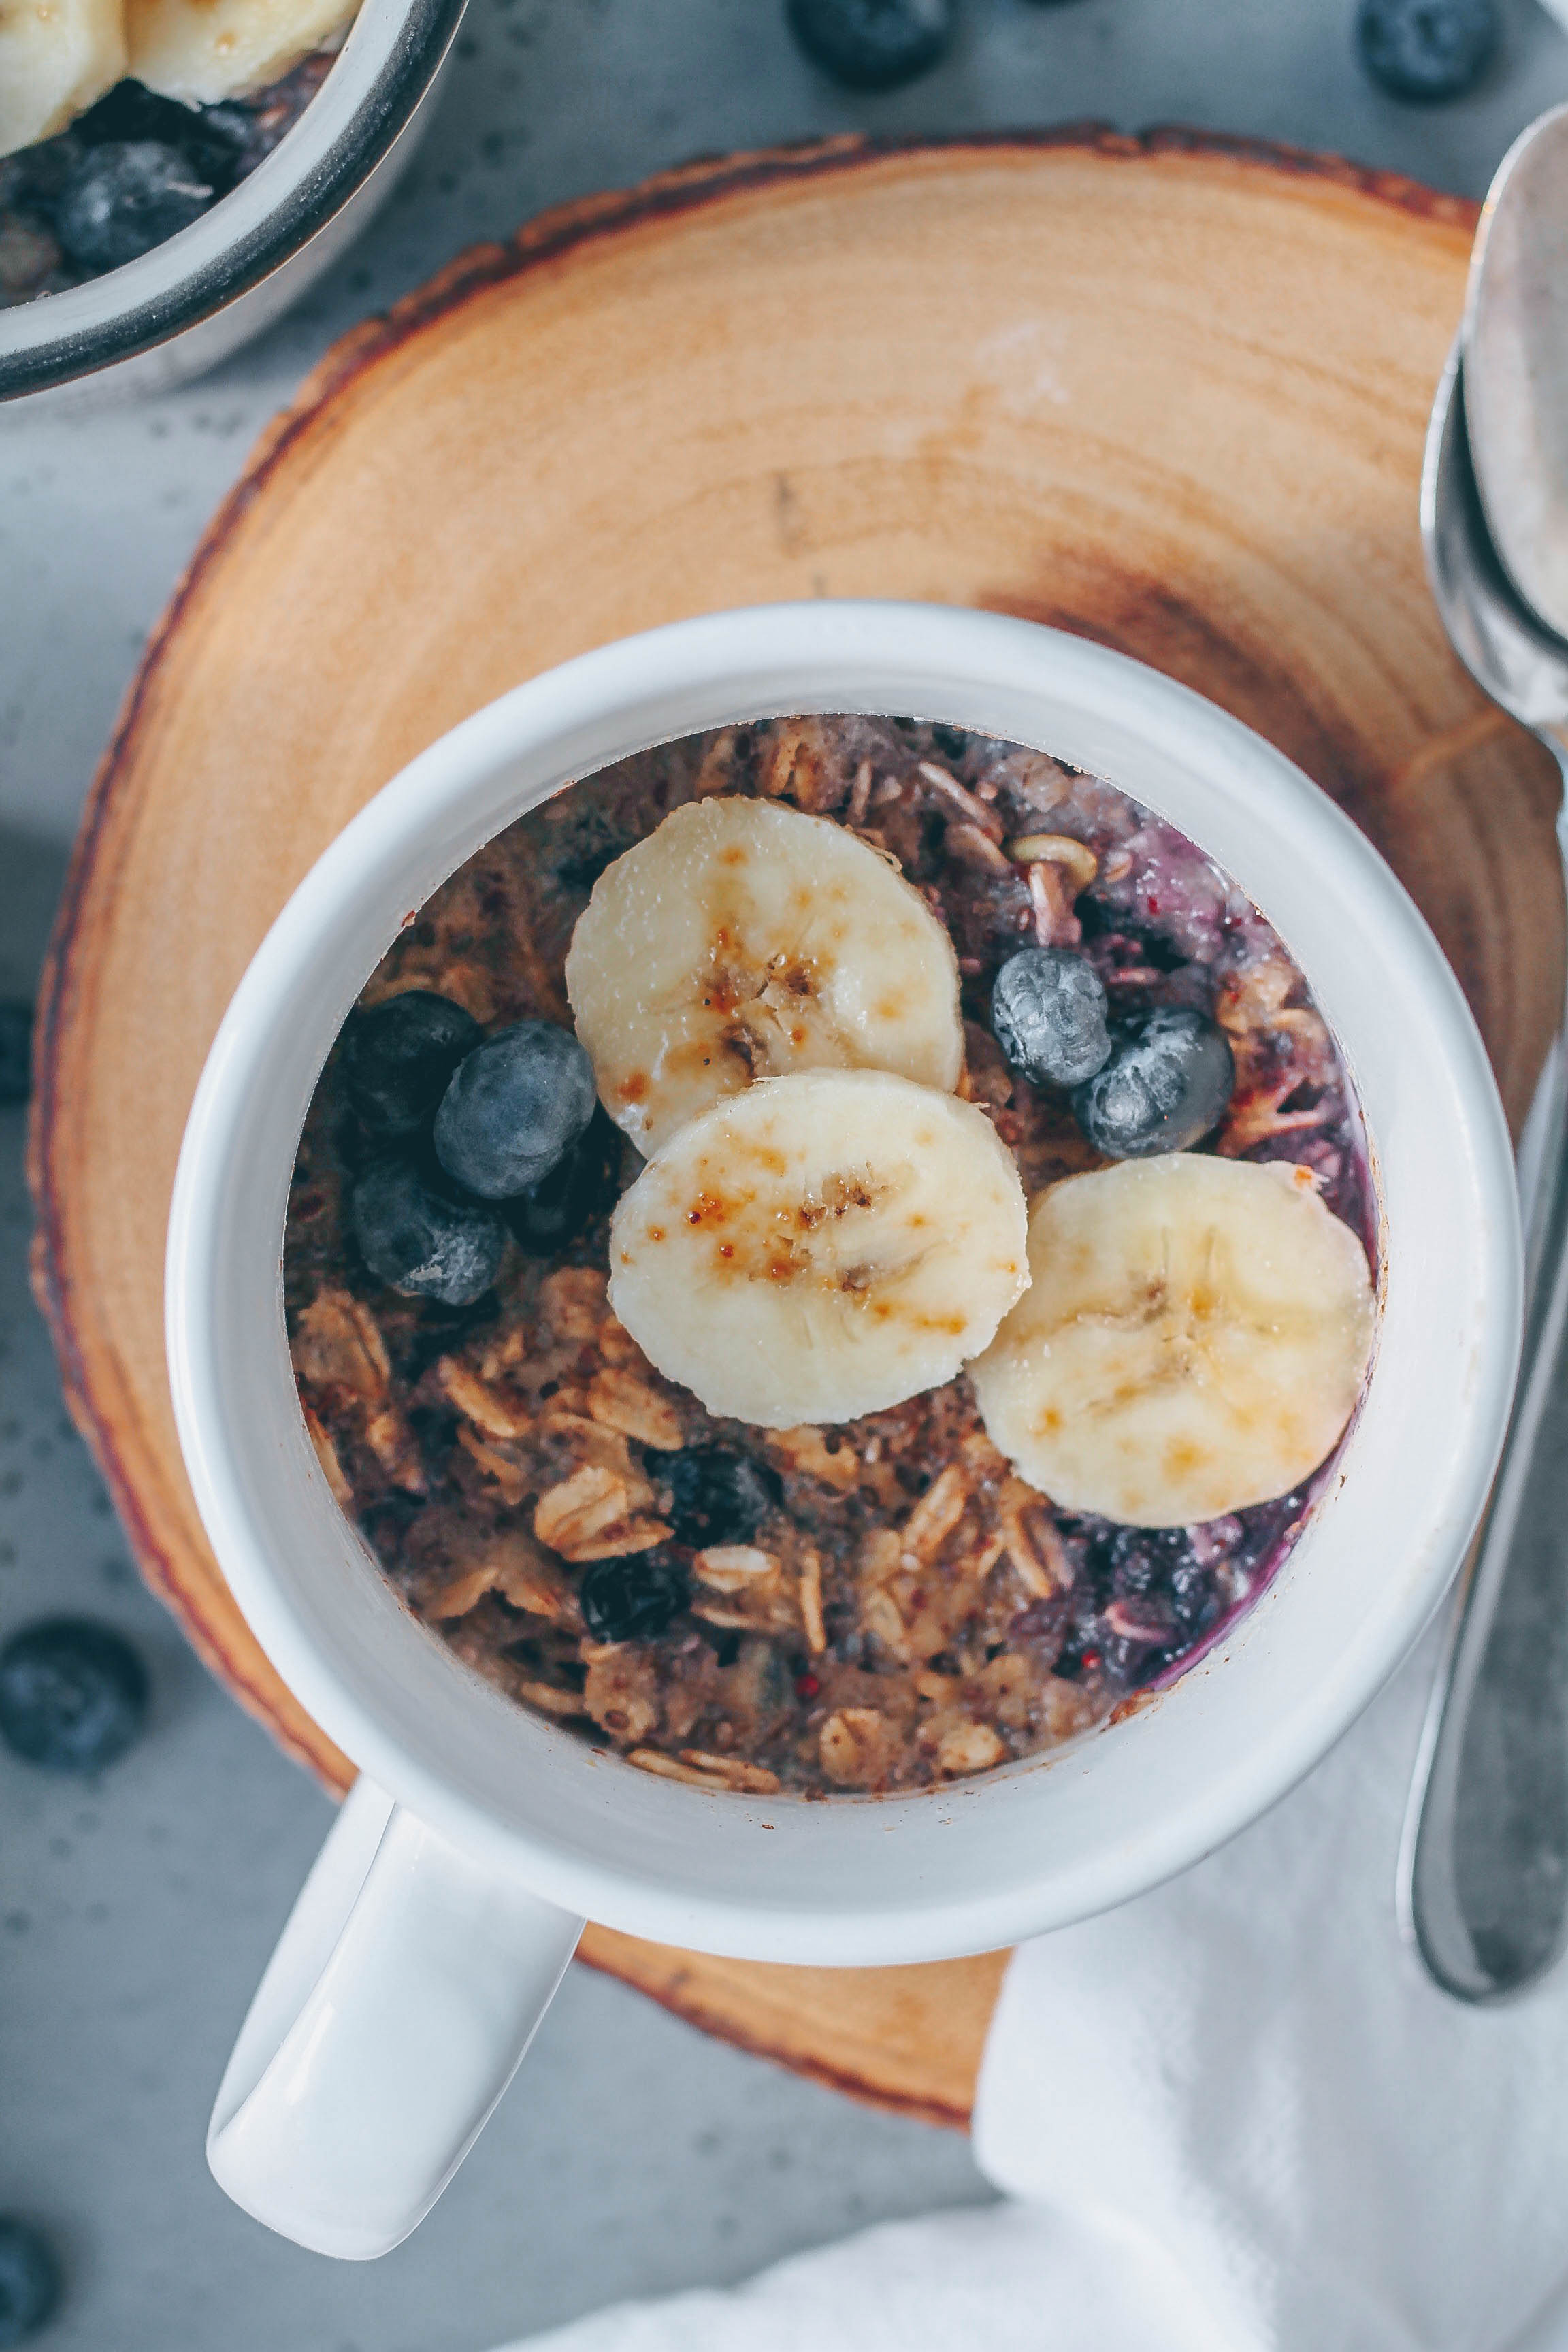 Microwave Blueberry Baked Oatmeal In A Mug Healthienut Easy To Follow Plant Based Recipes